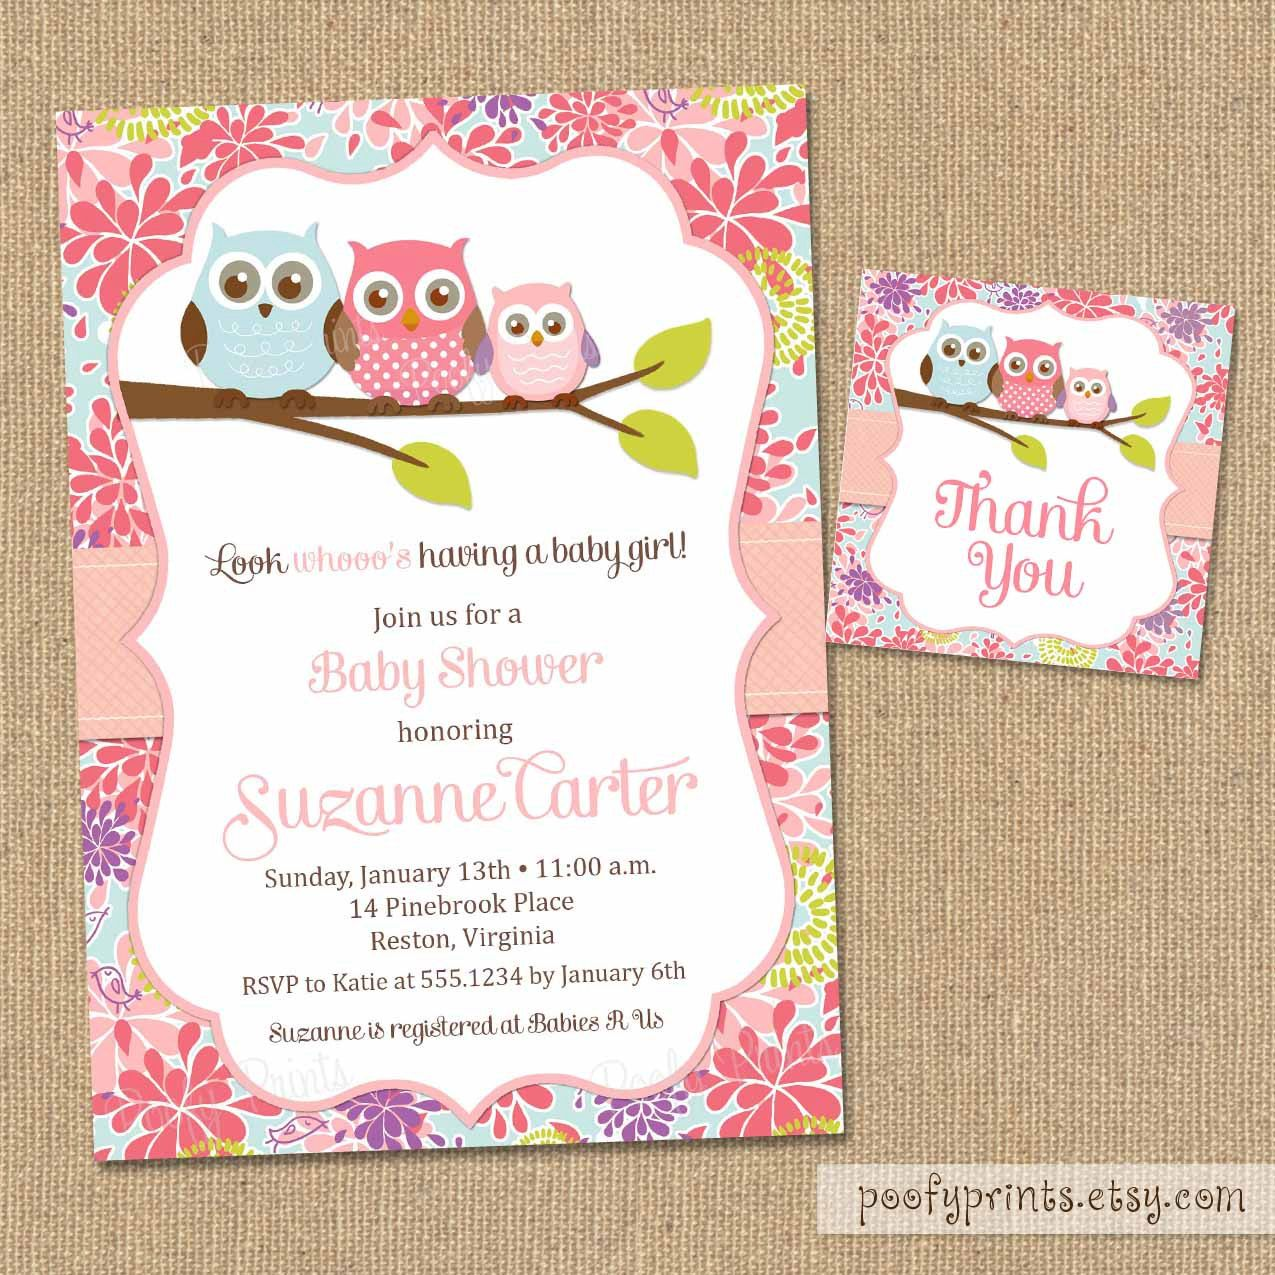 Owl baby shower invitations diy printable baby girl shower owl baby shower invitations diy printable baby girl shower invitations free favor tags included filmwisefo Choice Image